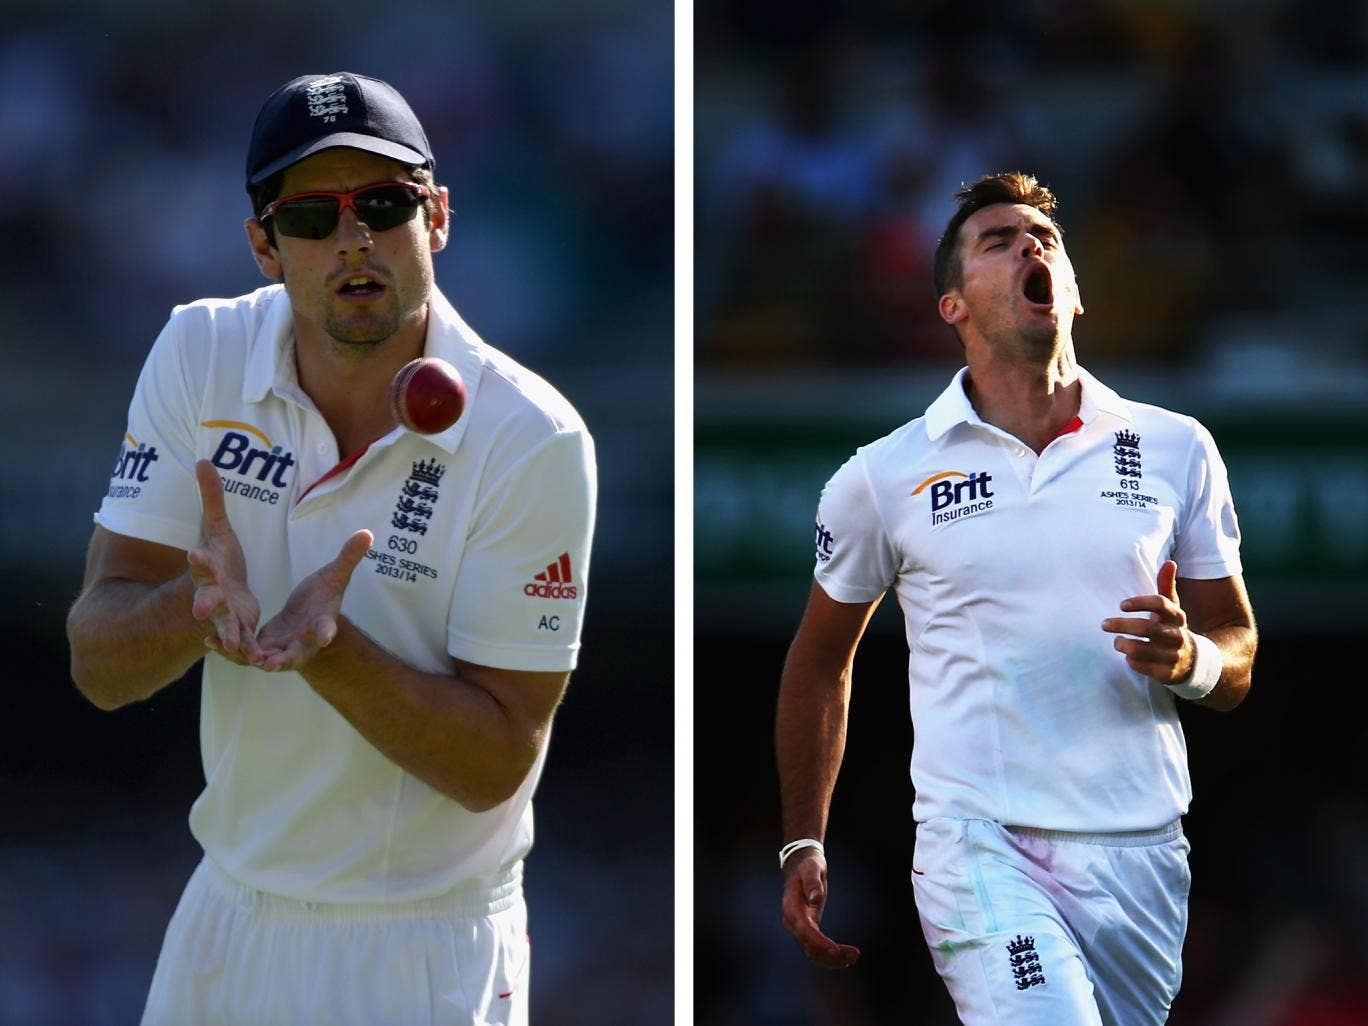 Alastair Cook and James Anderson have been nominated for the ICC Cricketer of the Year award